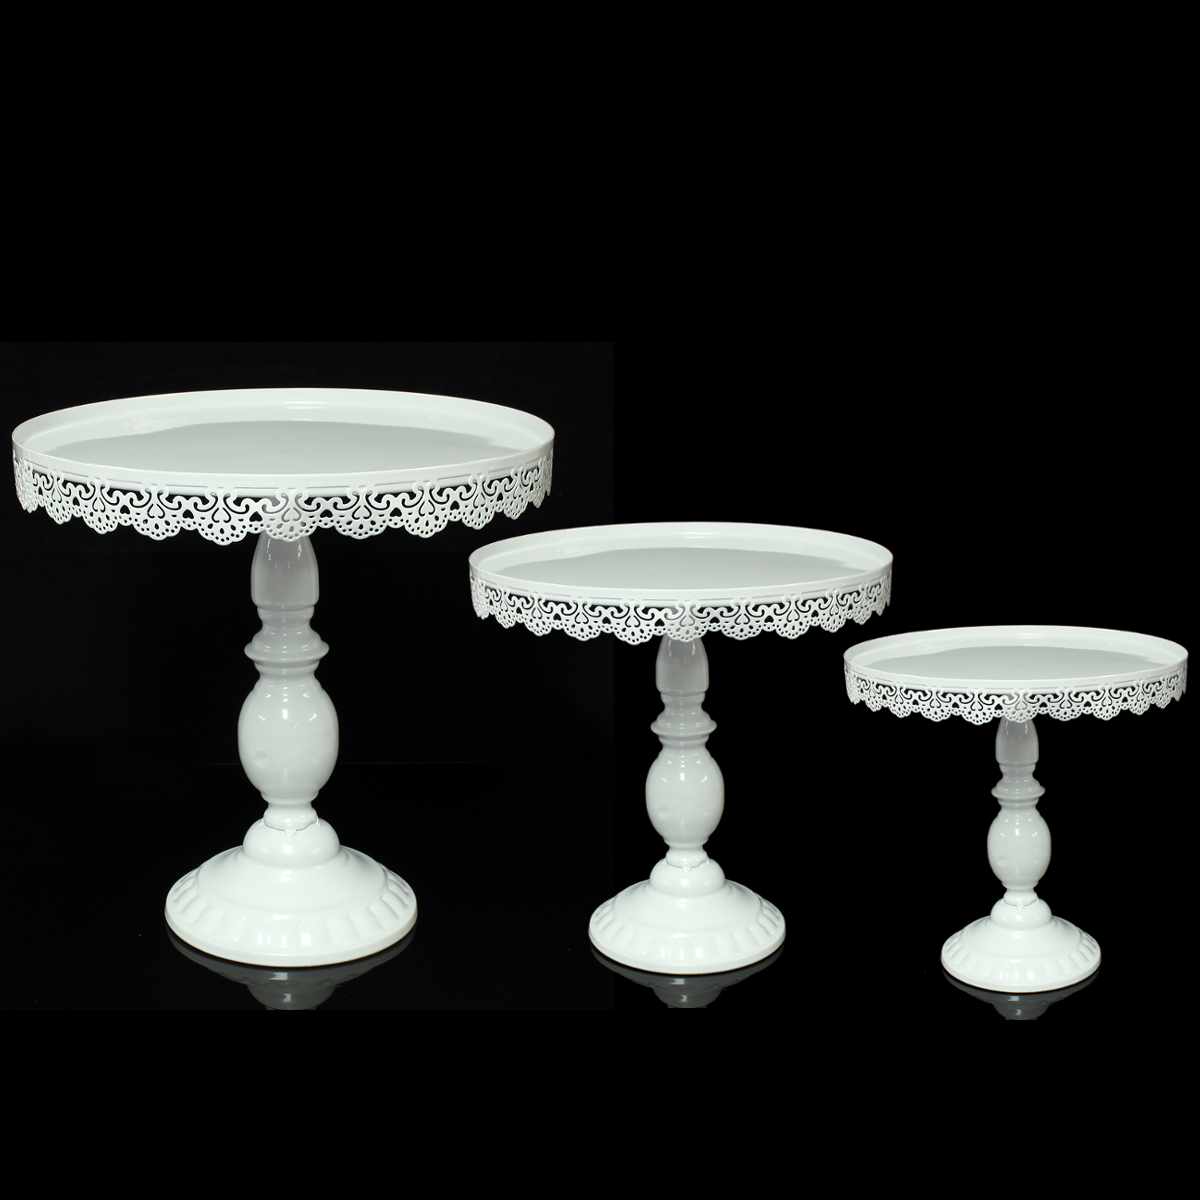 3 Size Vintage Round Cake Dessert Stand Display Metal Lace Wedding Party Decor